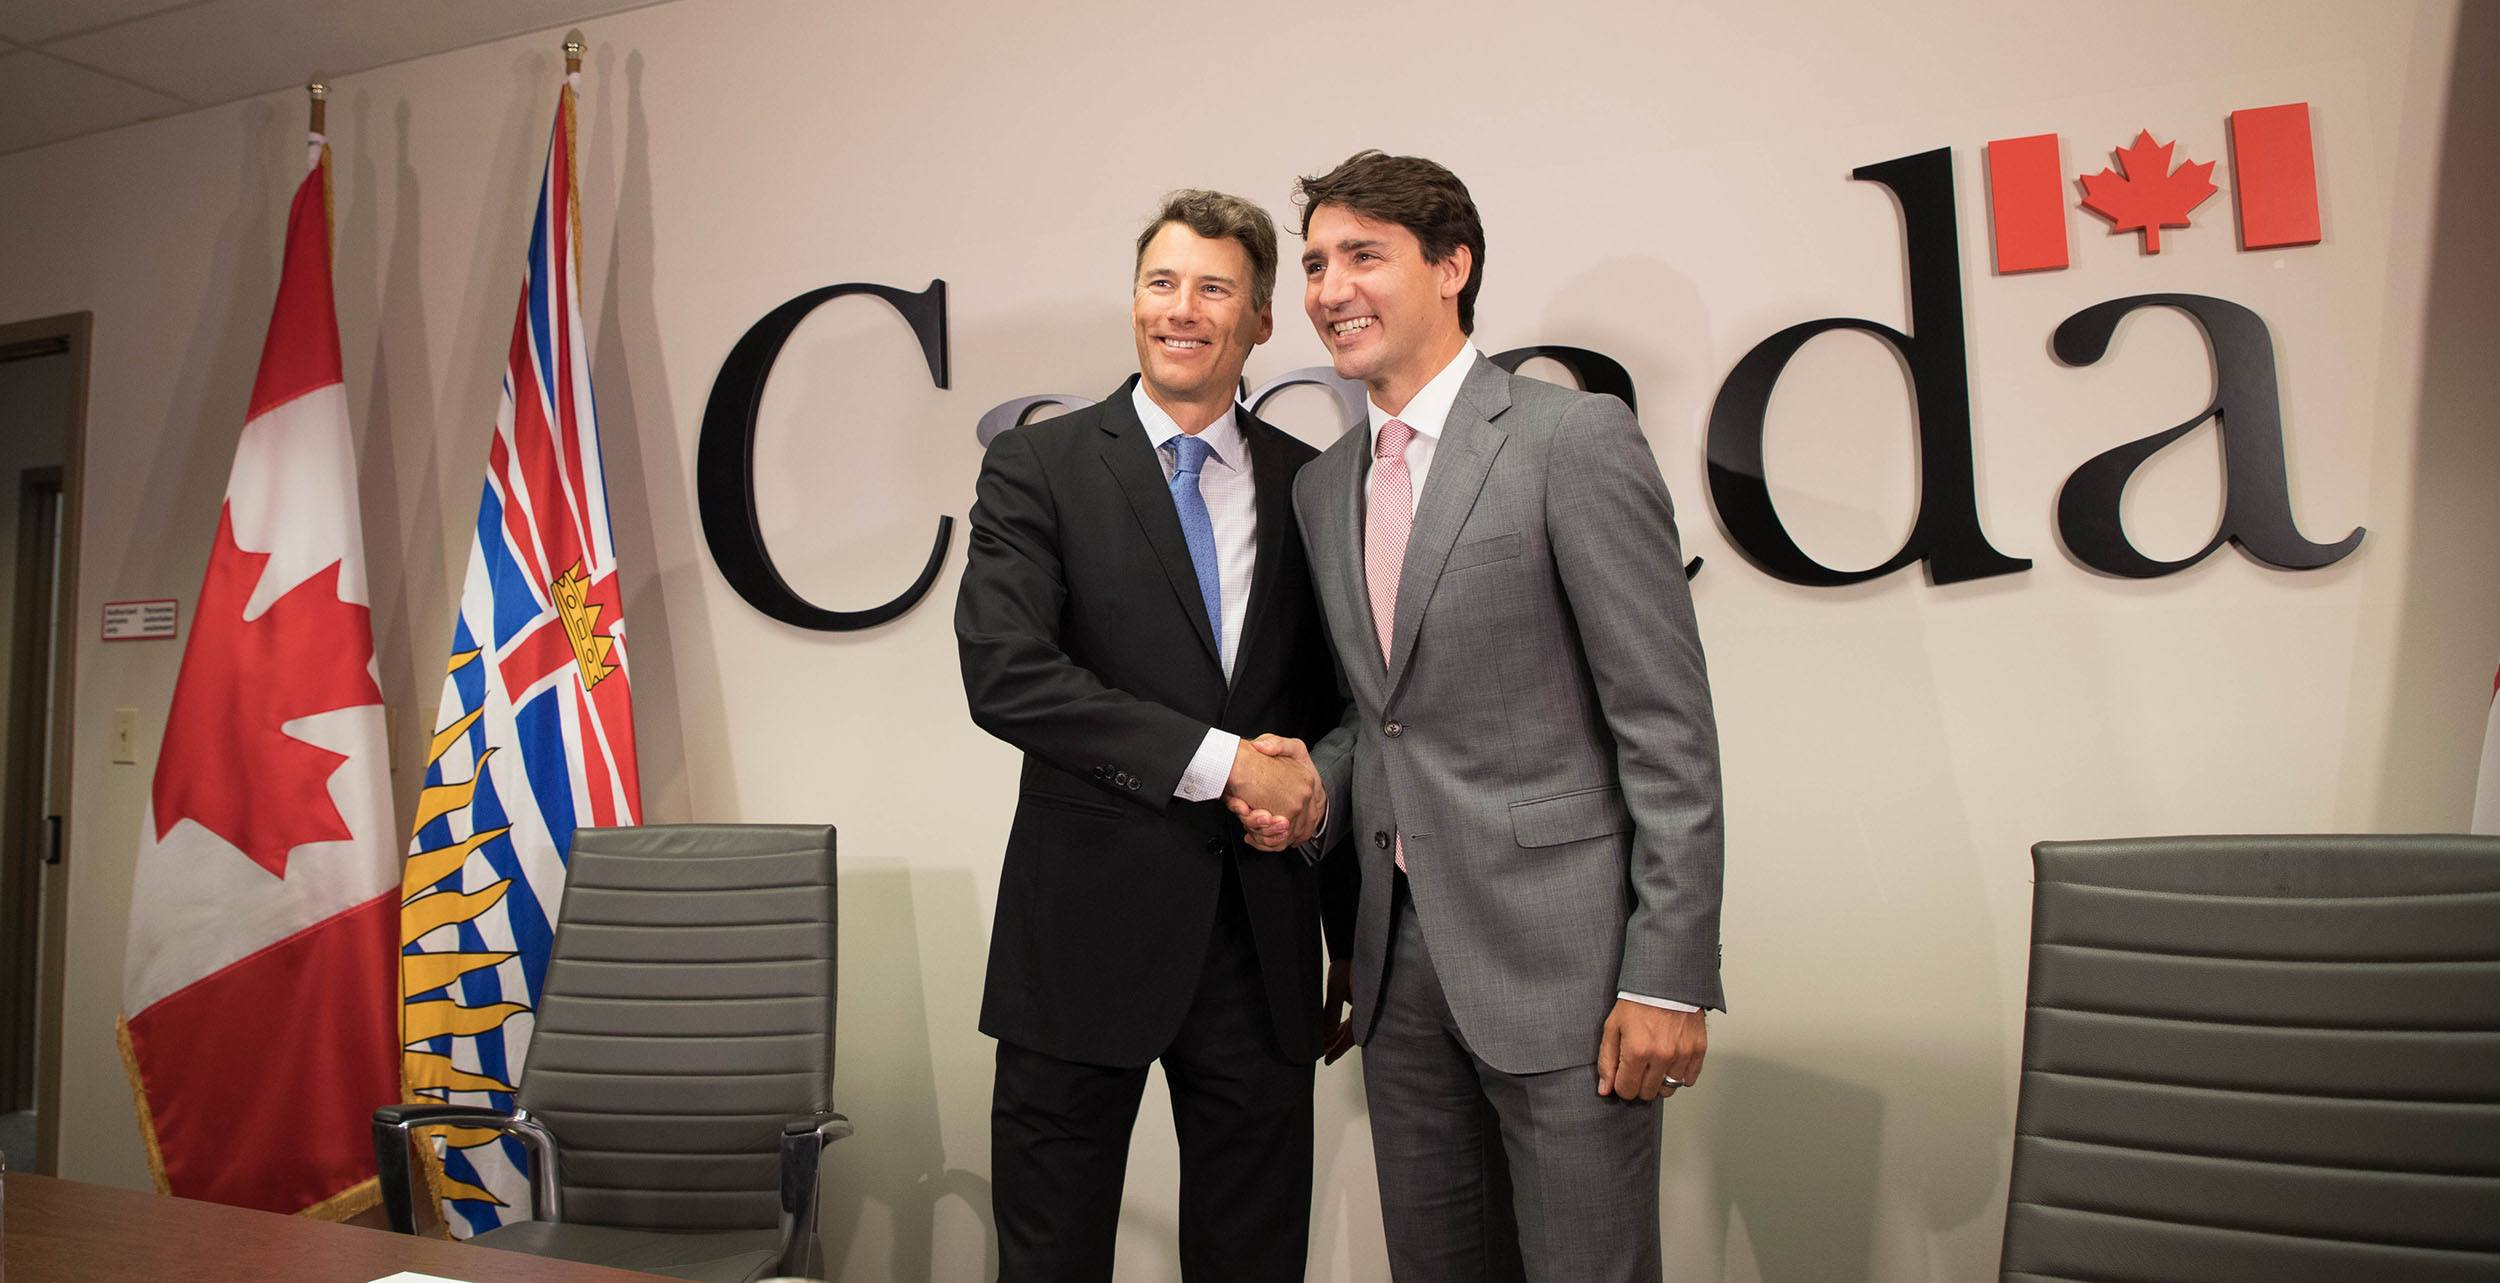 Gregor and trudeau 1 copy